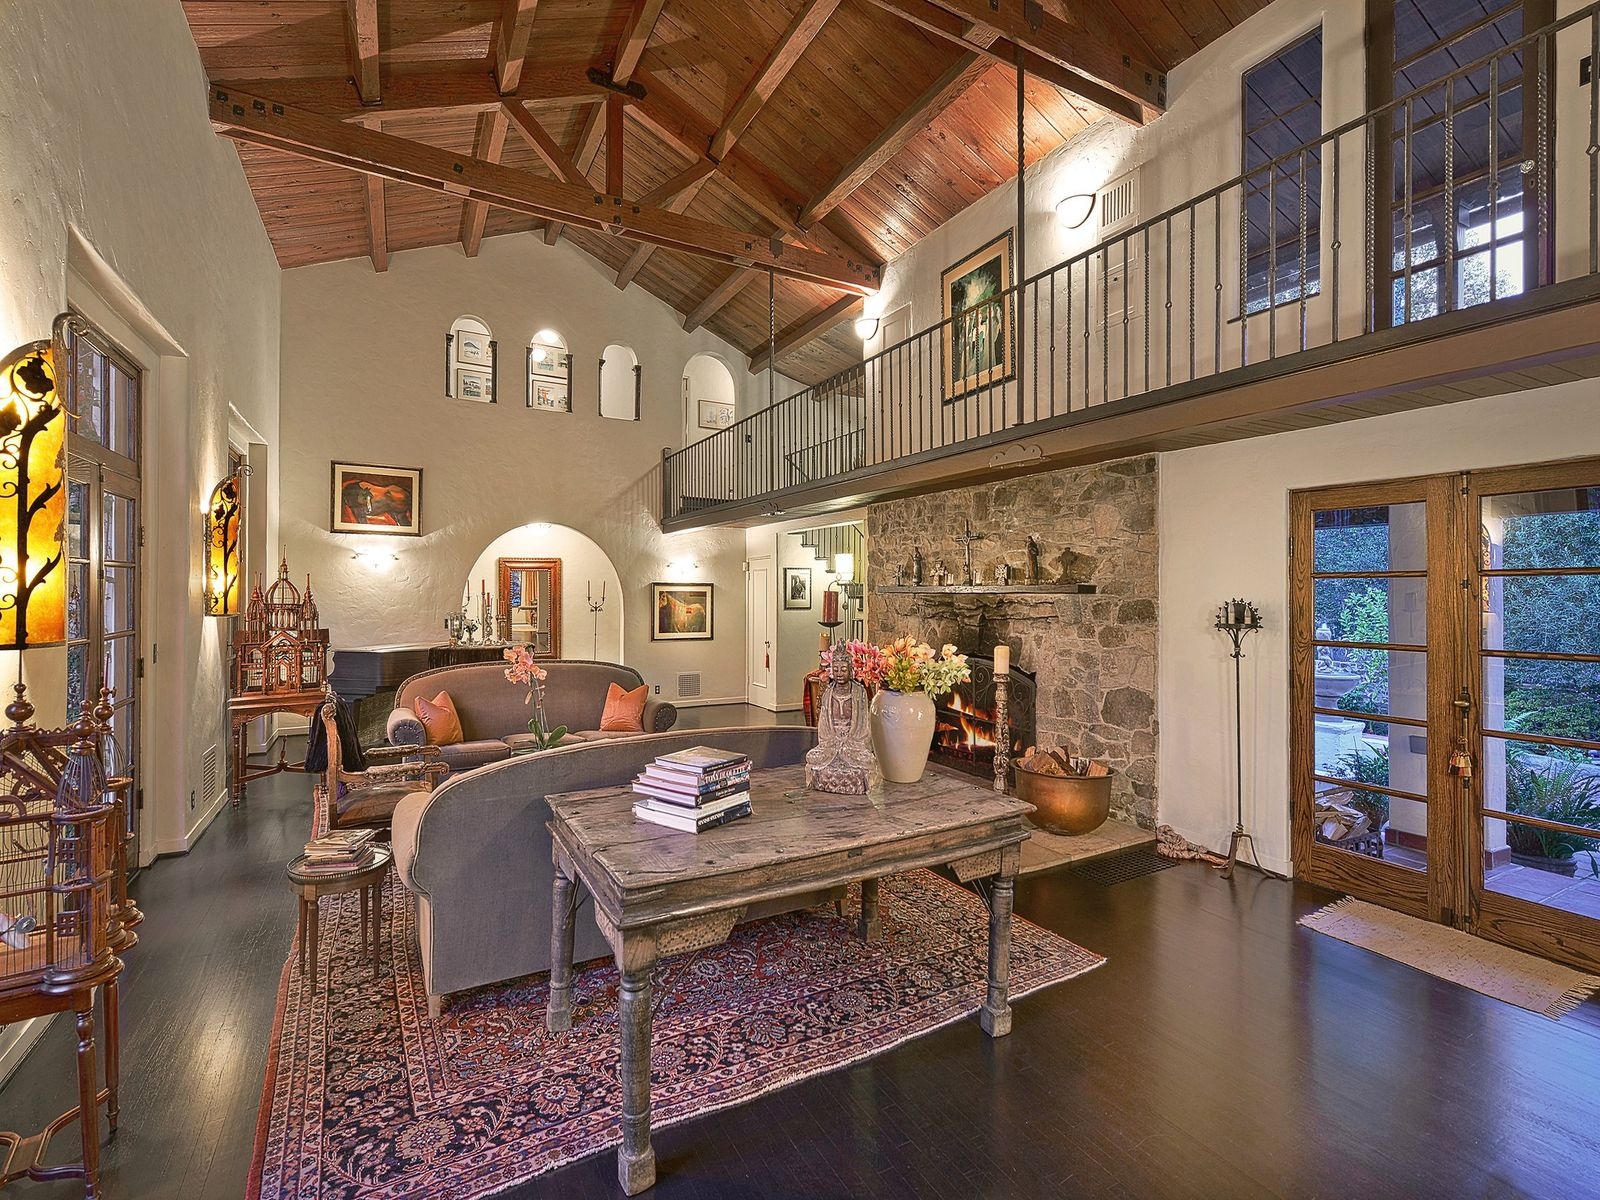 Spanish Colonial Revival Villa, Pebble Beach CA Single Family Home - Monterey Real Estate